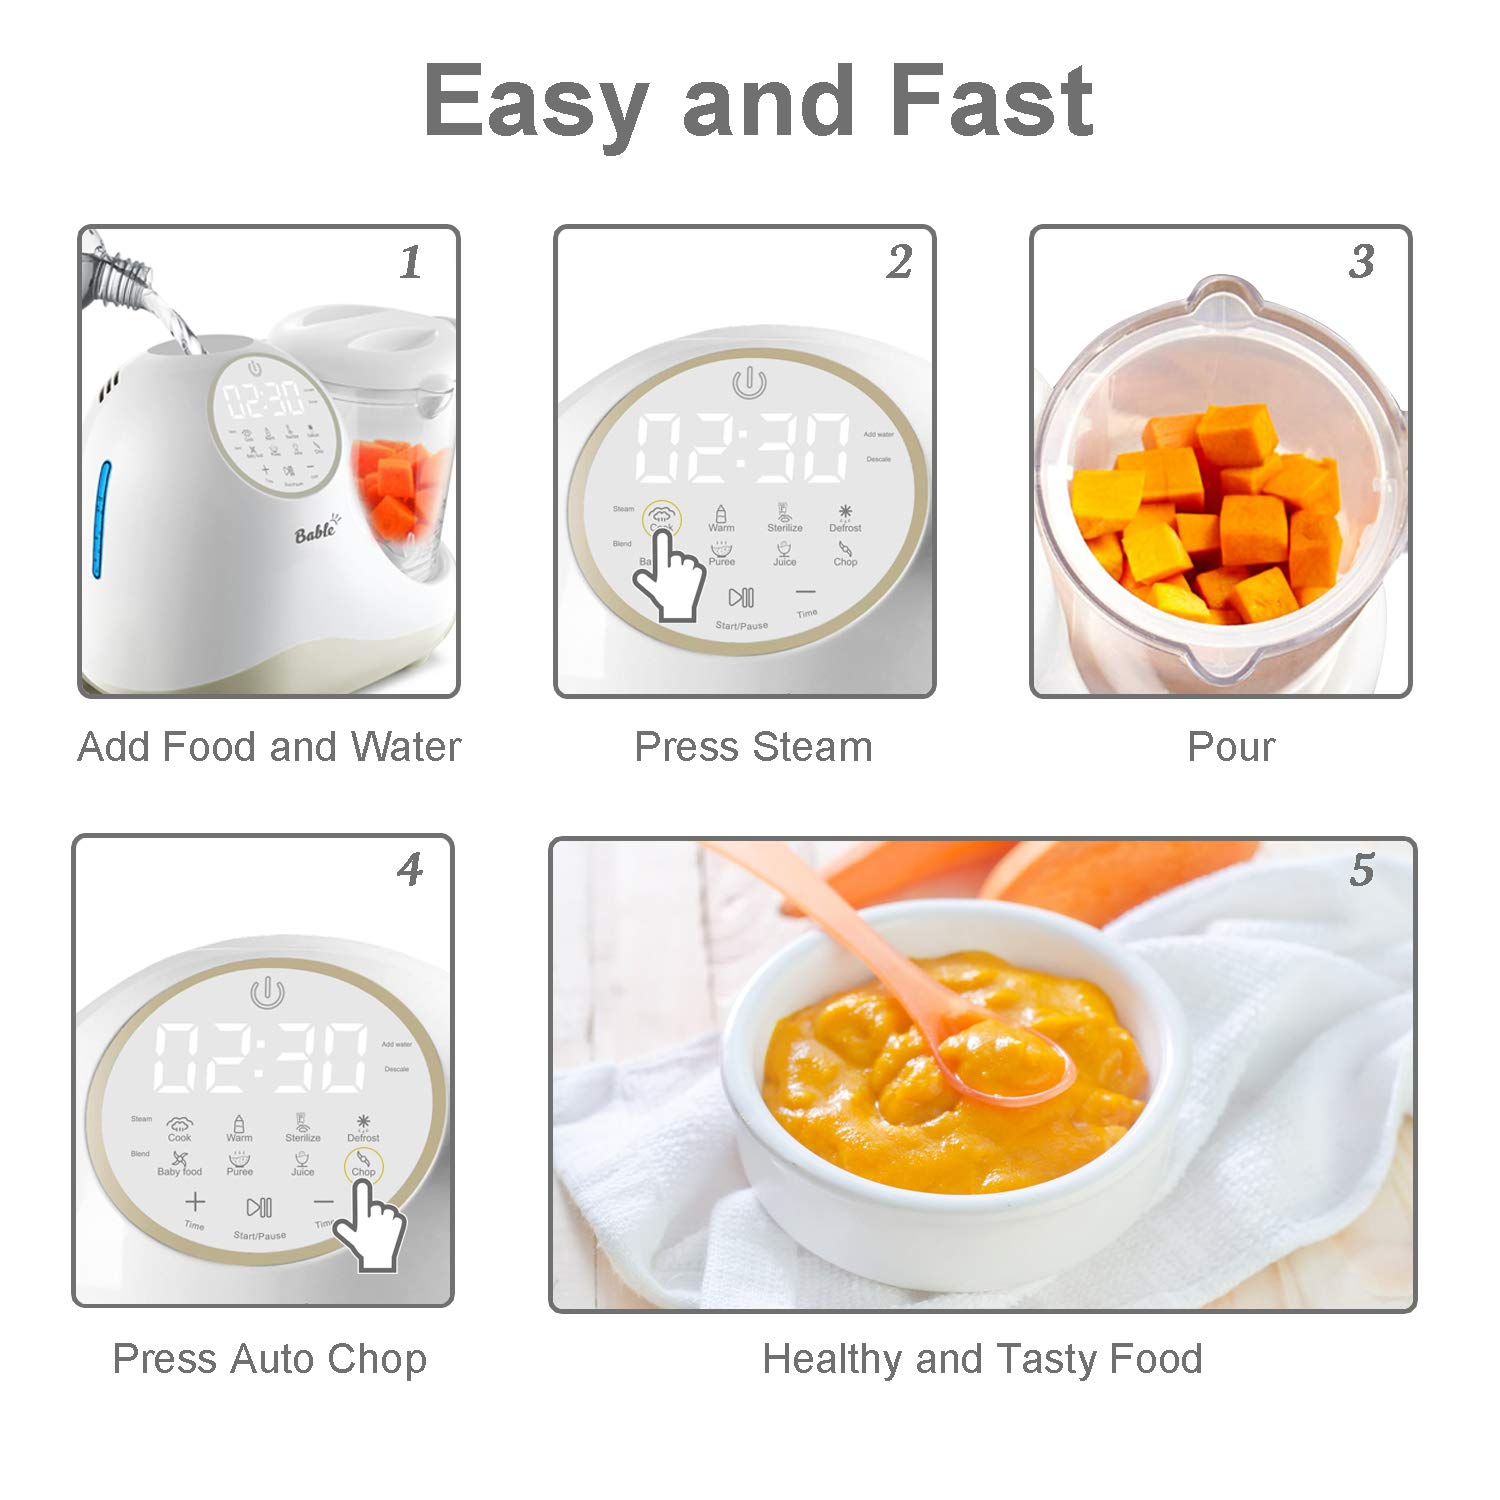 Baby Food Maker for Infants and Toddlers, Bable All in 1 Food Processor Mills Machine with Steam, Blend, Chop, Reheater, Grinder and Auto Cleaning, Touch Control Panel, Auto Shut-Off by BABLE (Image #3)